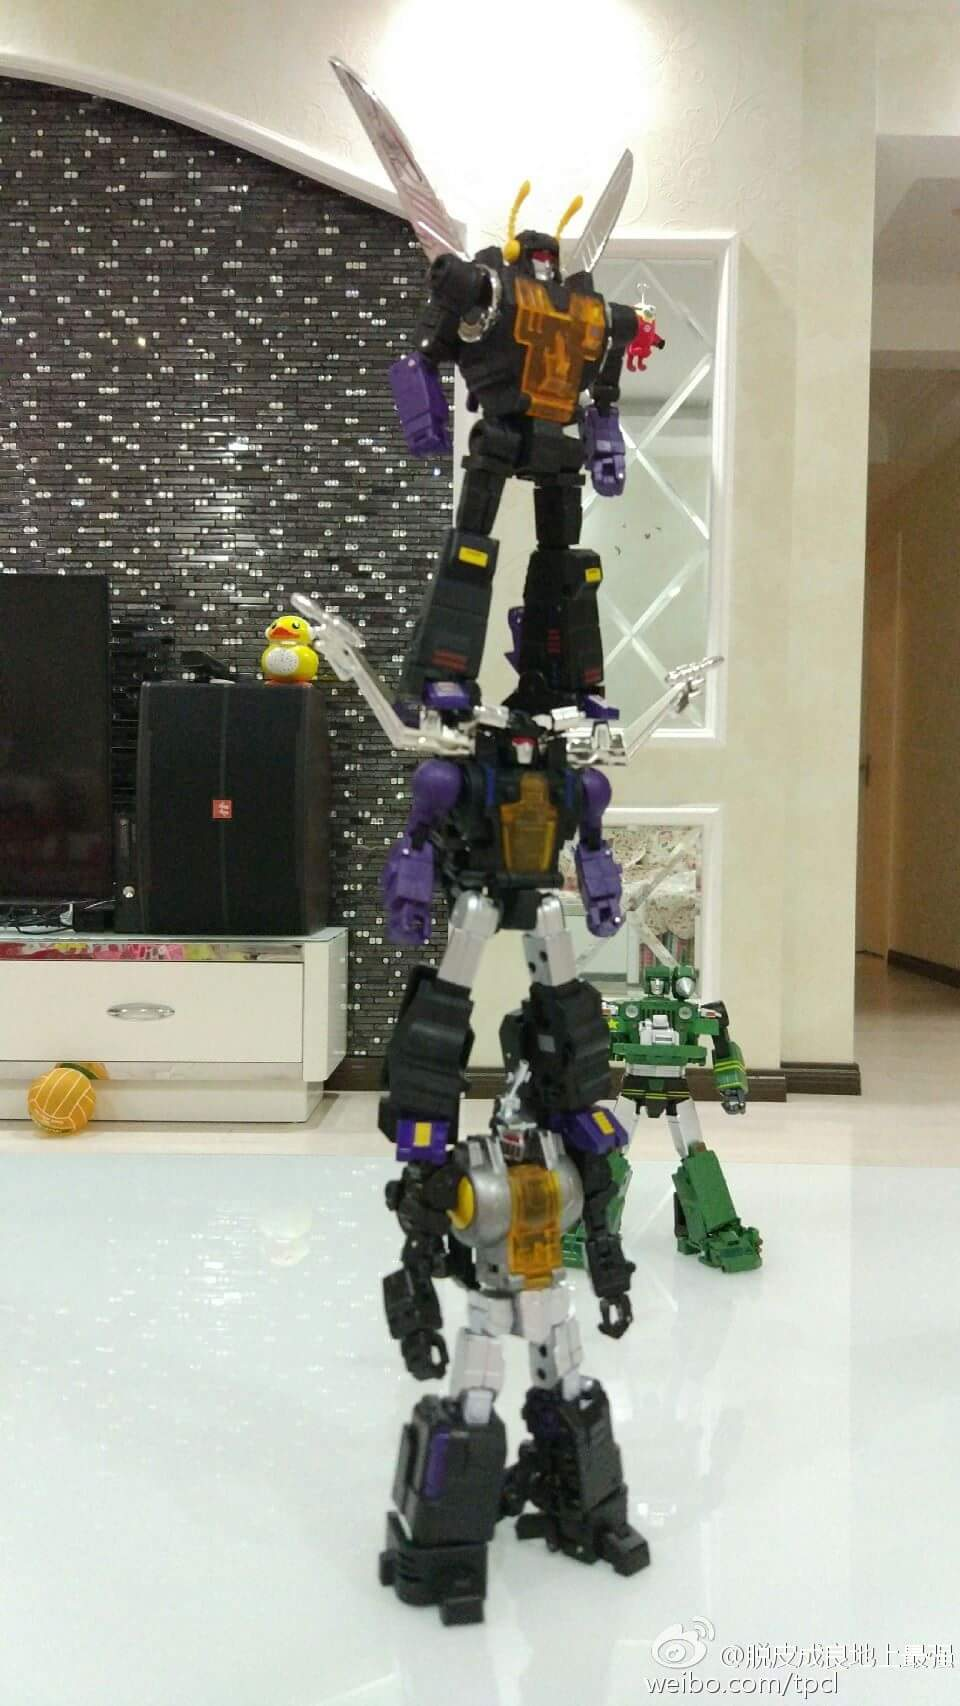 [Fanstoys] Produit Tiers - Jouet FT-12 Grenadier / FT-13 Mercenary / FT-14 Forager - aka Insecticons - Page 4 T5OrJwjo